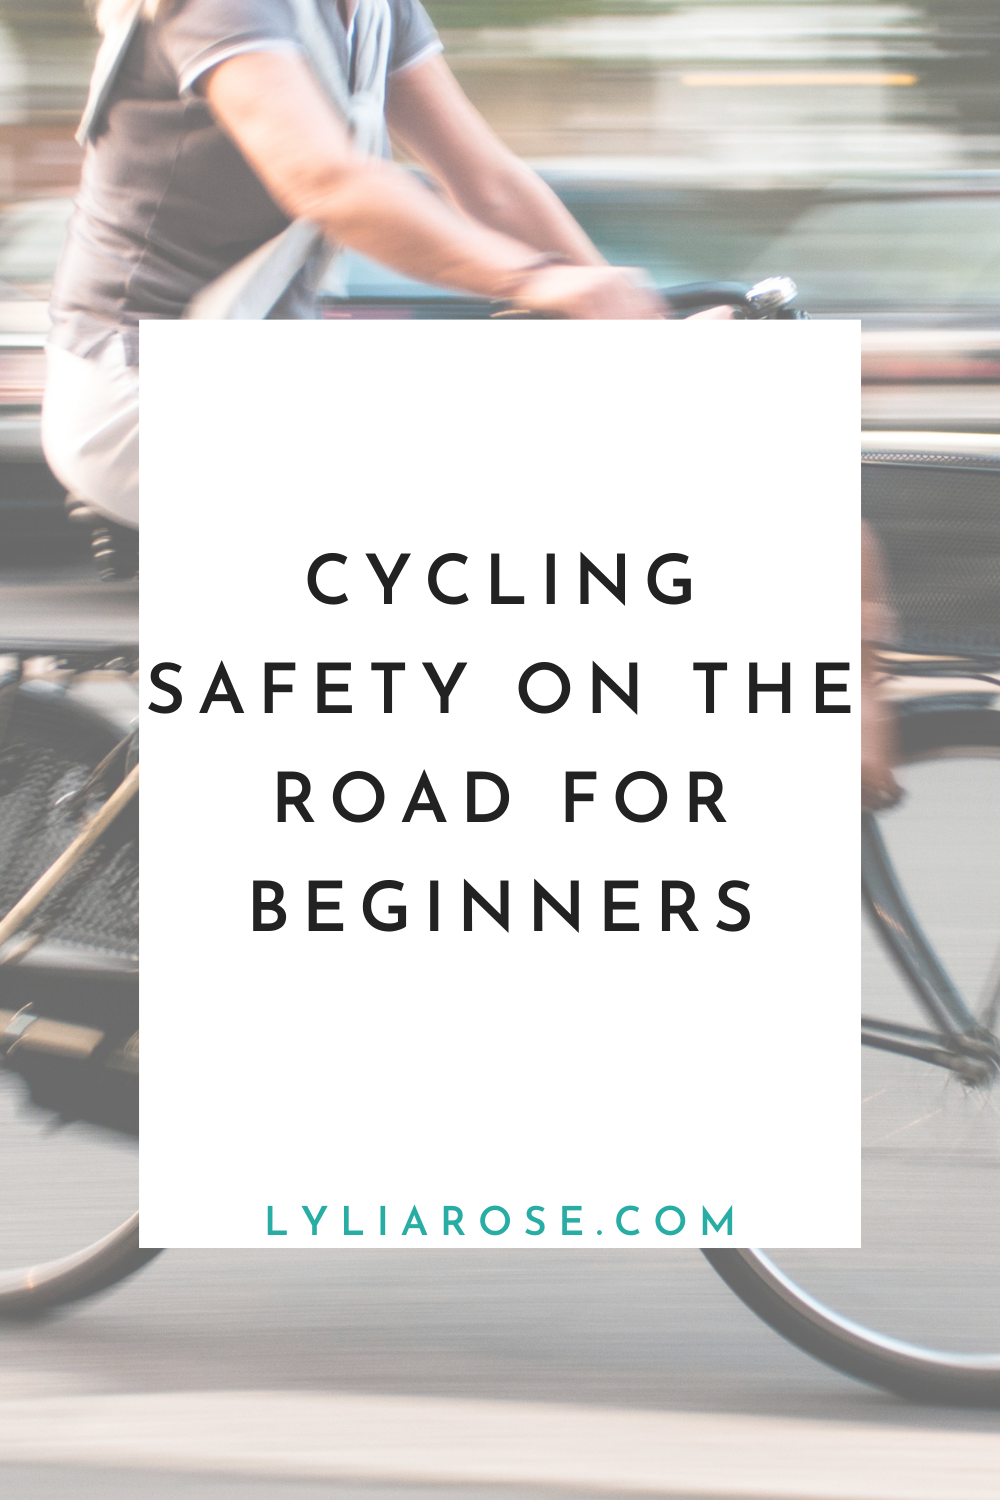 Cycling safety on the road for beginners